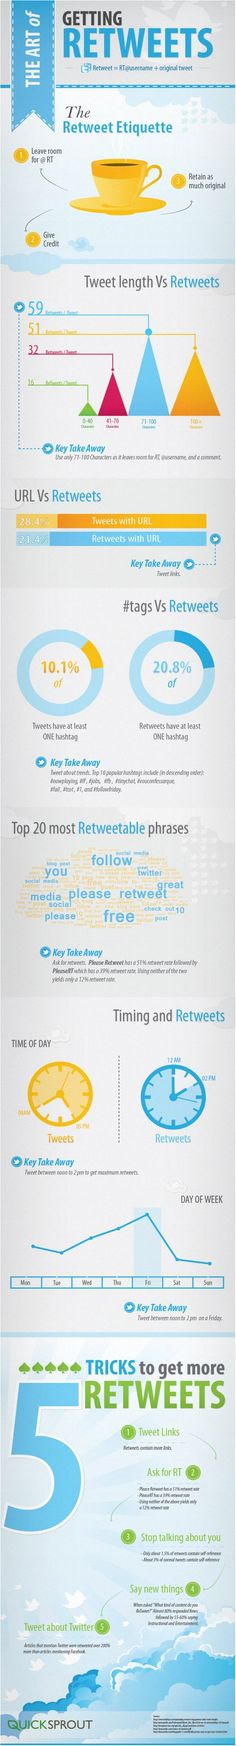 How to Get More #Retweets on Twitter - Jeffbullas's Blog via Vicente de Vicq